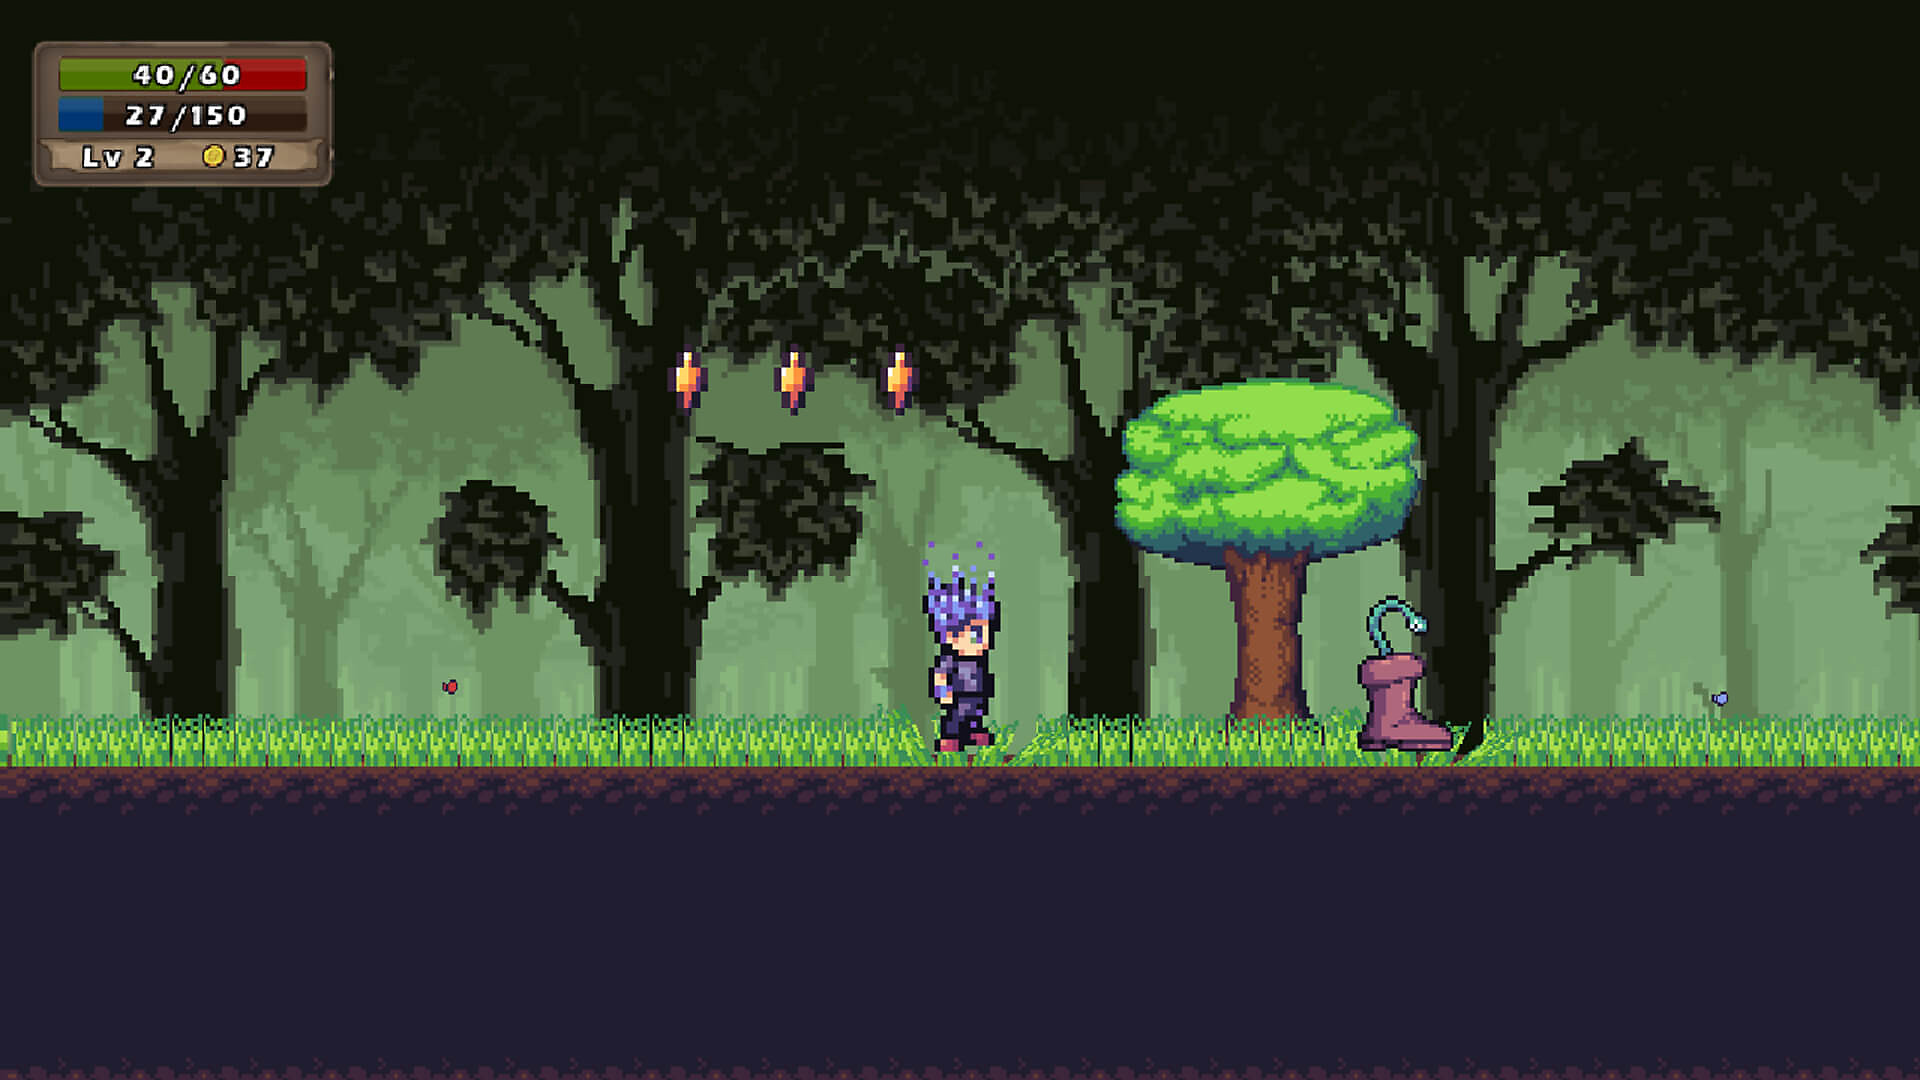 Platforming in a forest level